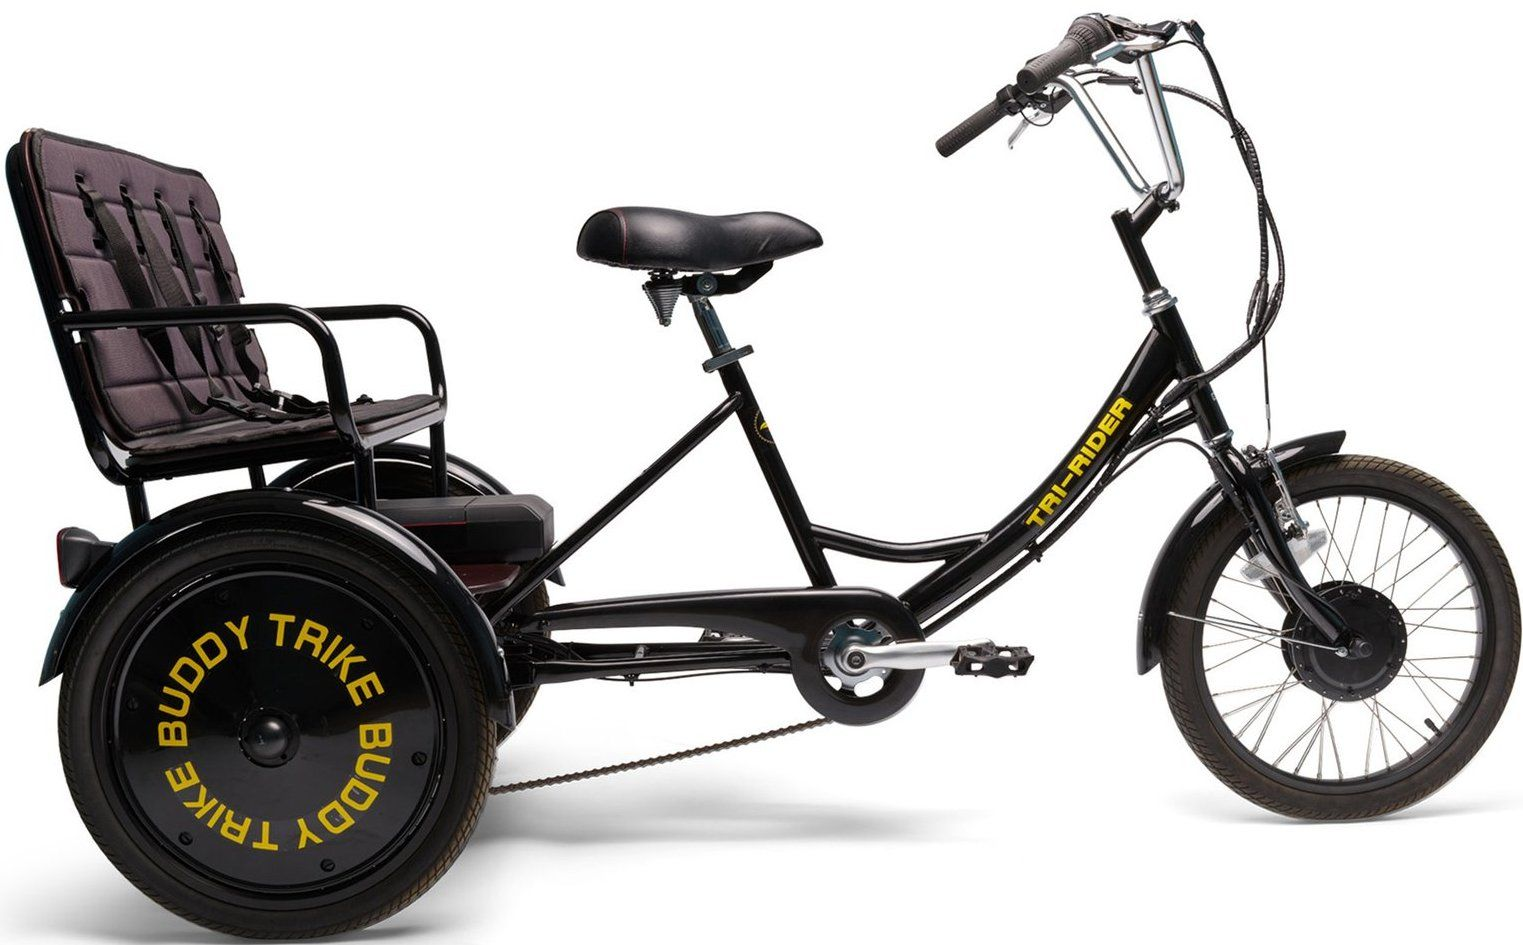 Buddy Trike 2 Passenger 6 Speed Electric Tricycle